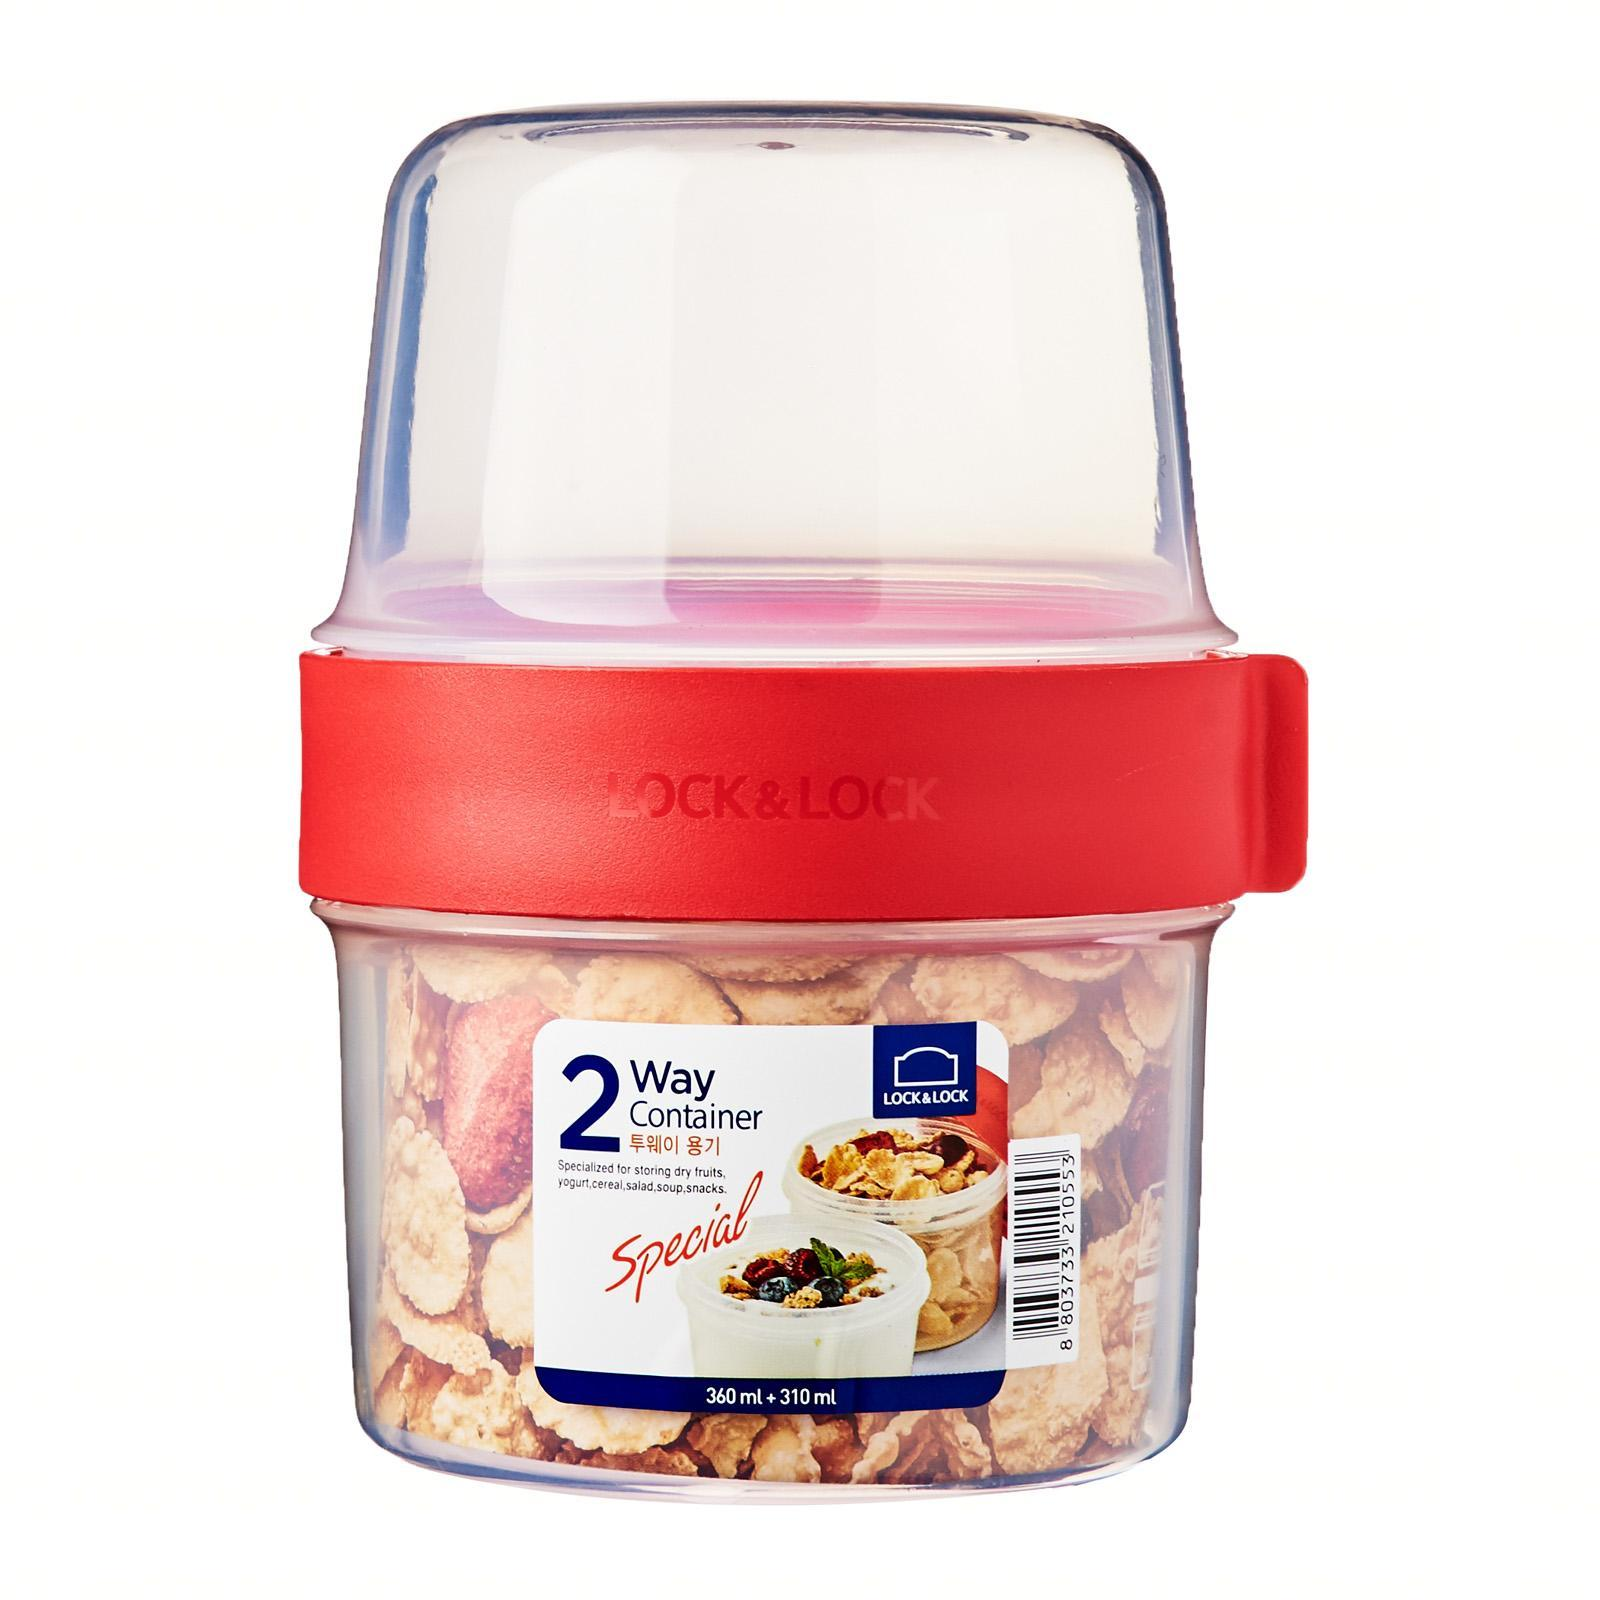 Lock and Lock Twist 2 Way Container 360Ml + 310Ml